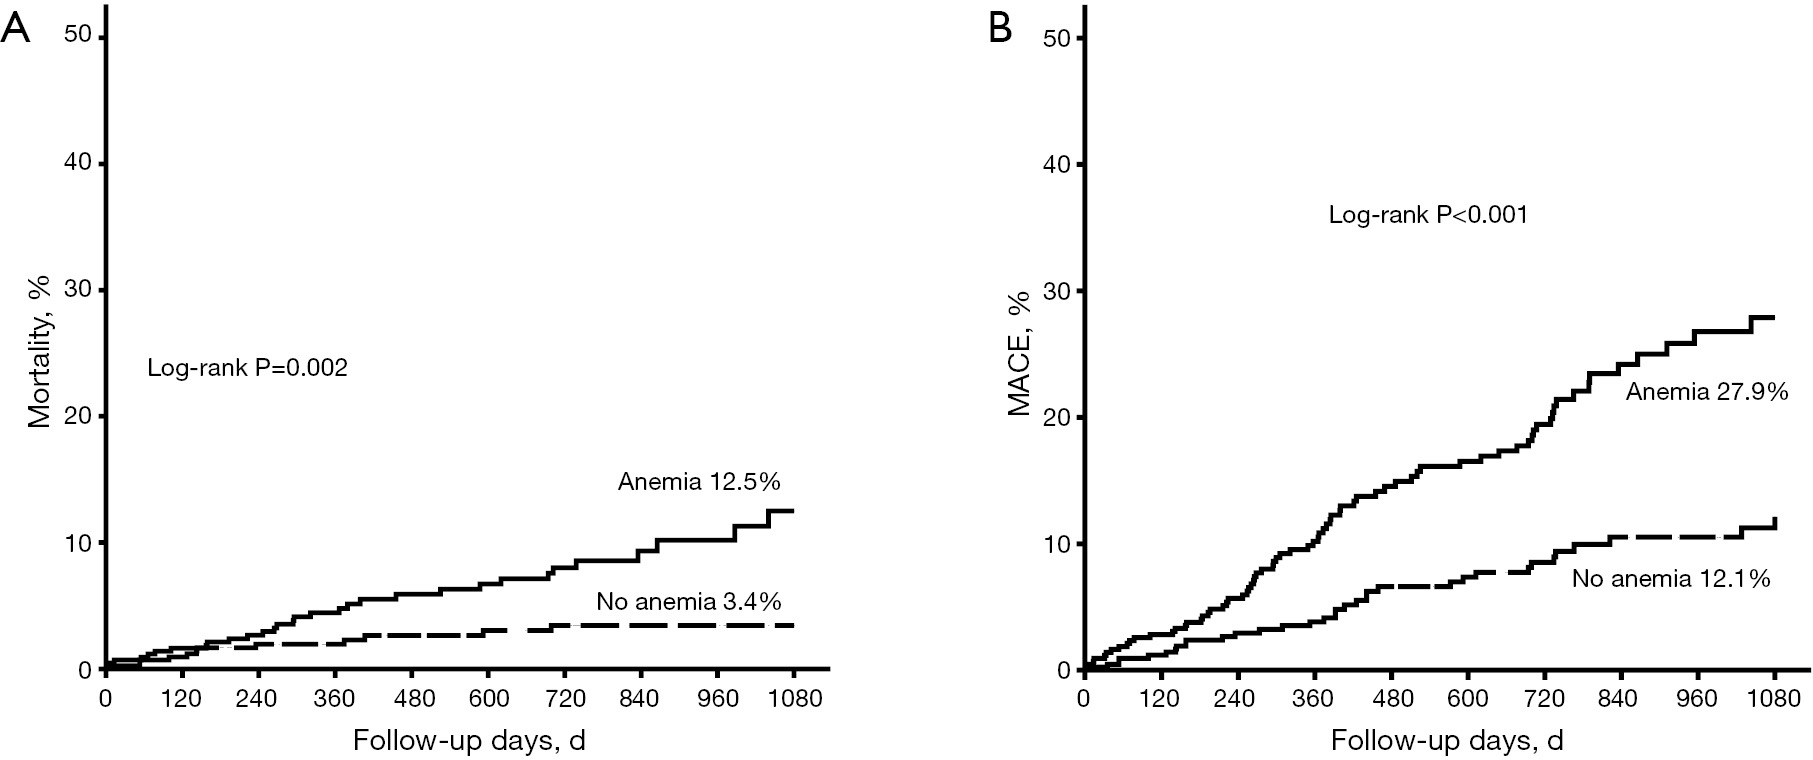 Impacts of anemia on 3-year ischemic events in patients